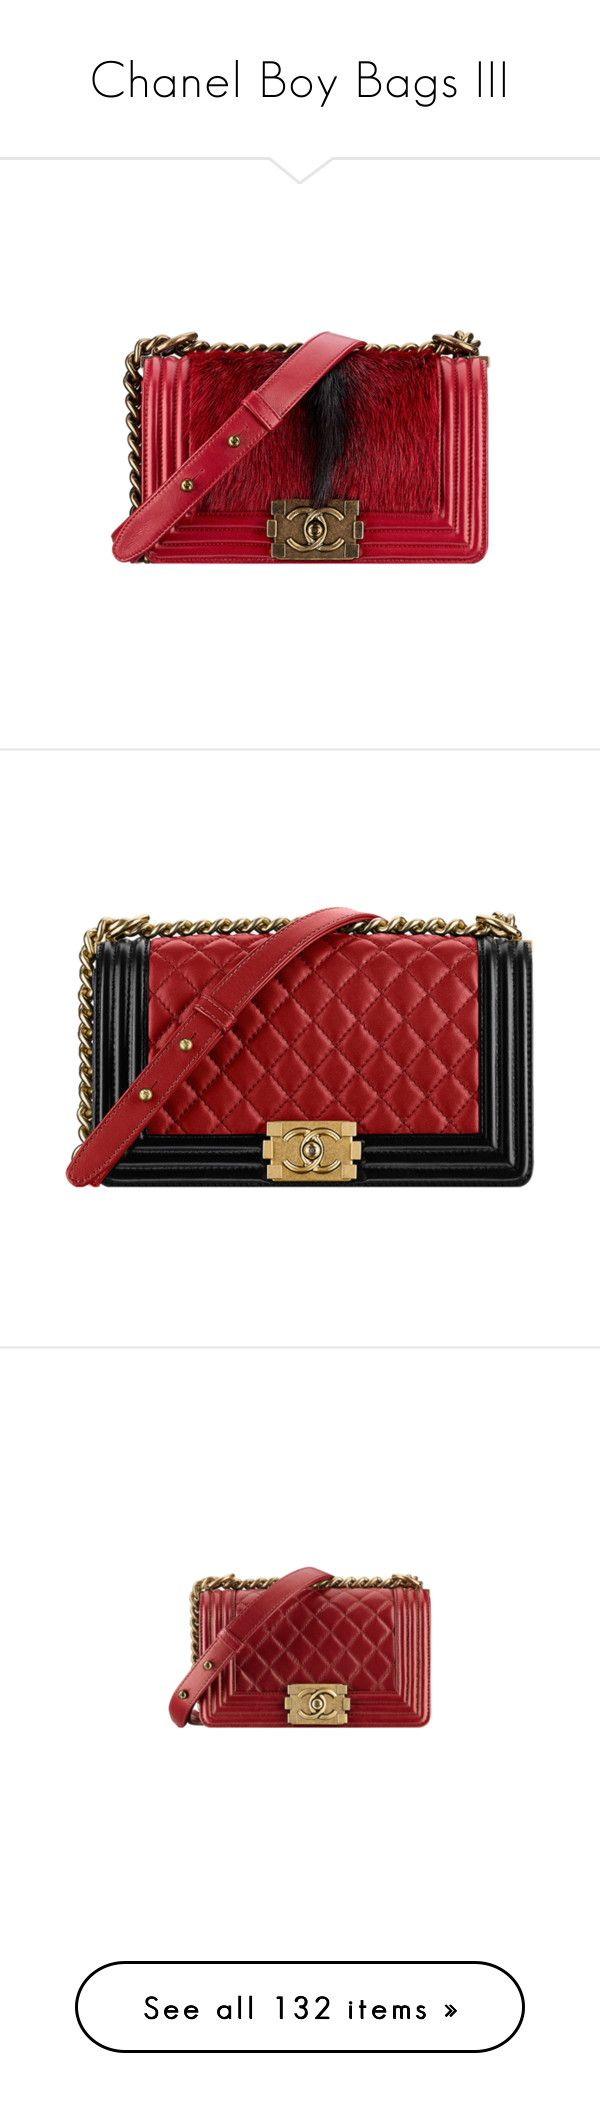 """""""Chanel Boy Bags III"""" by sakuragirl ❤ liked on Polyvore featuring bags, handbags, chanel, chanel bags, bolsa, chanel purse, chanel handbags, red bags, handbag purse and long purse"""